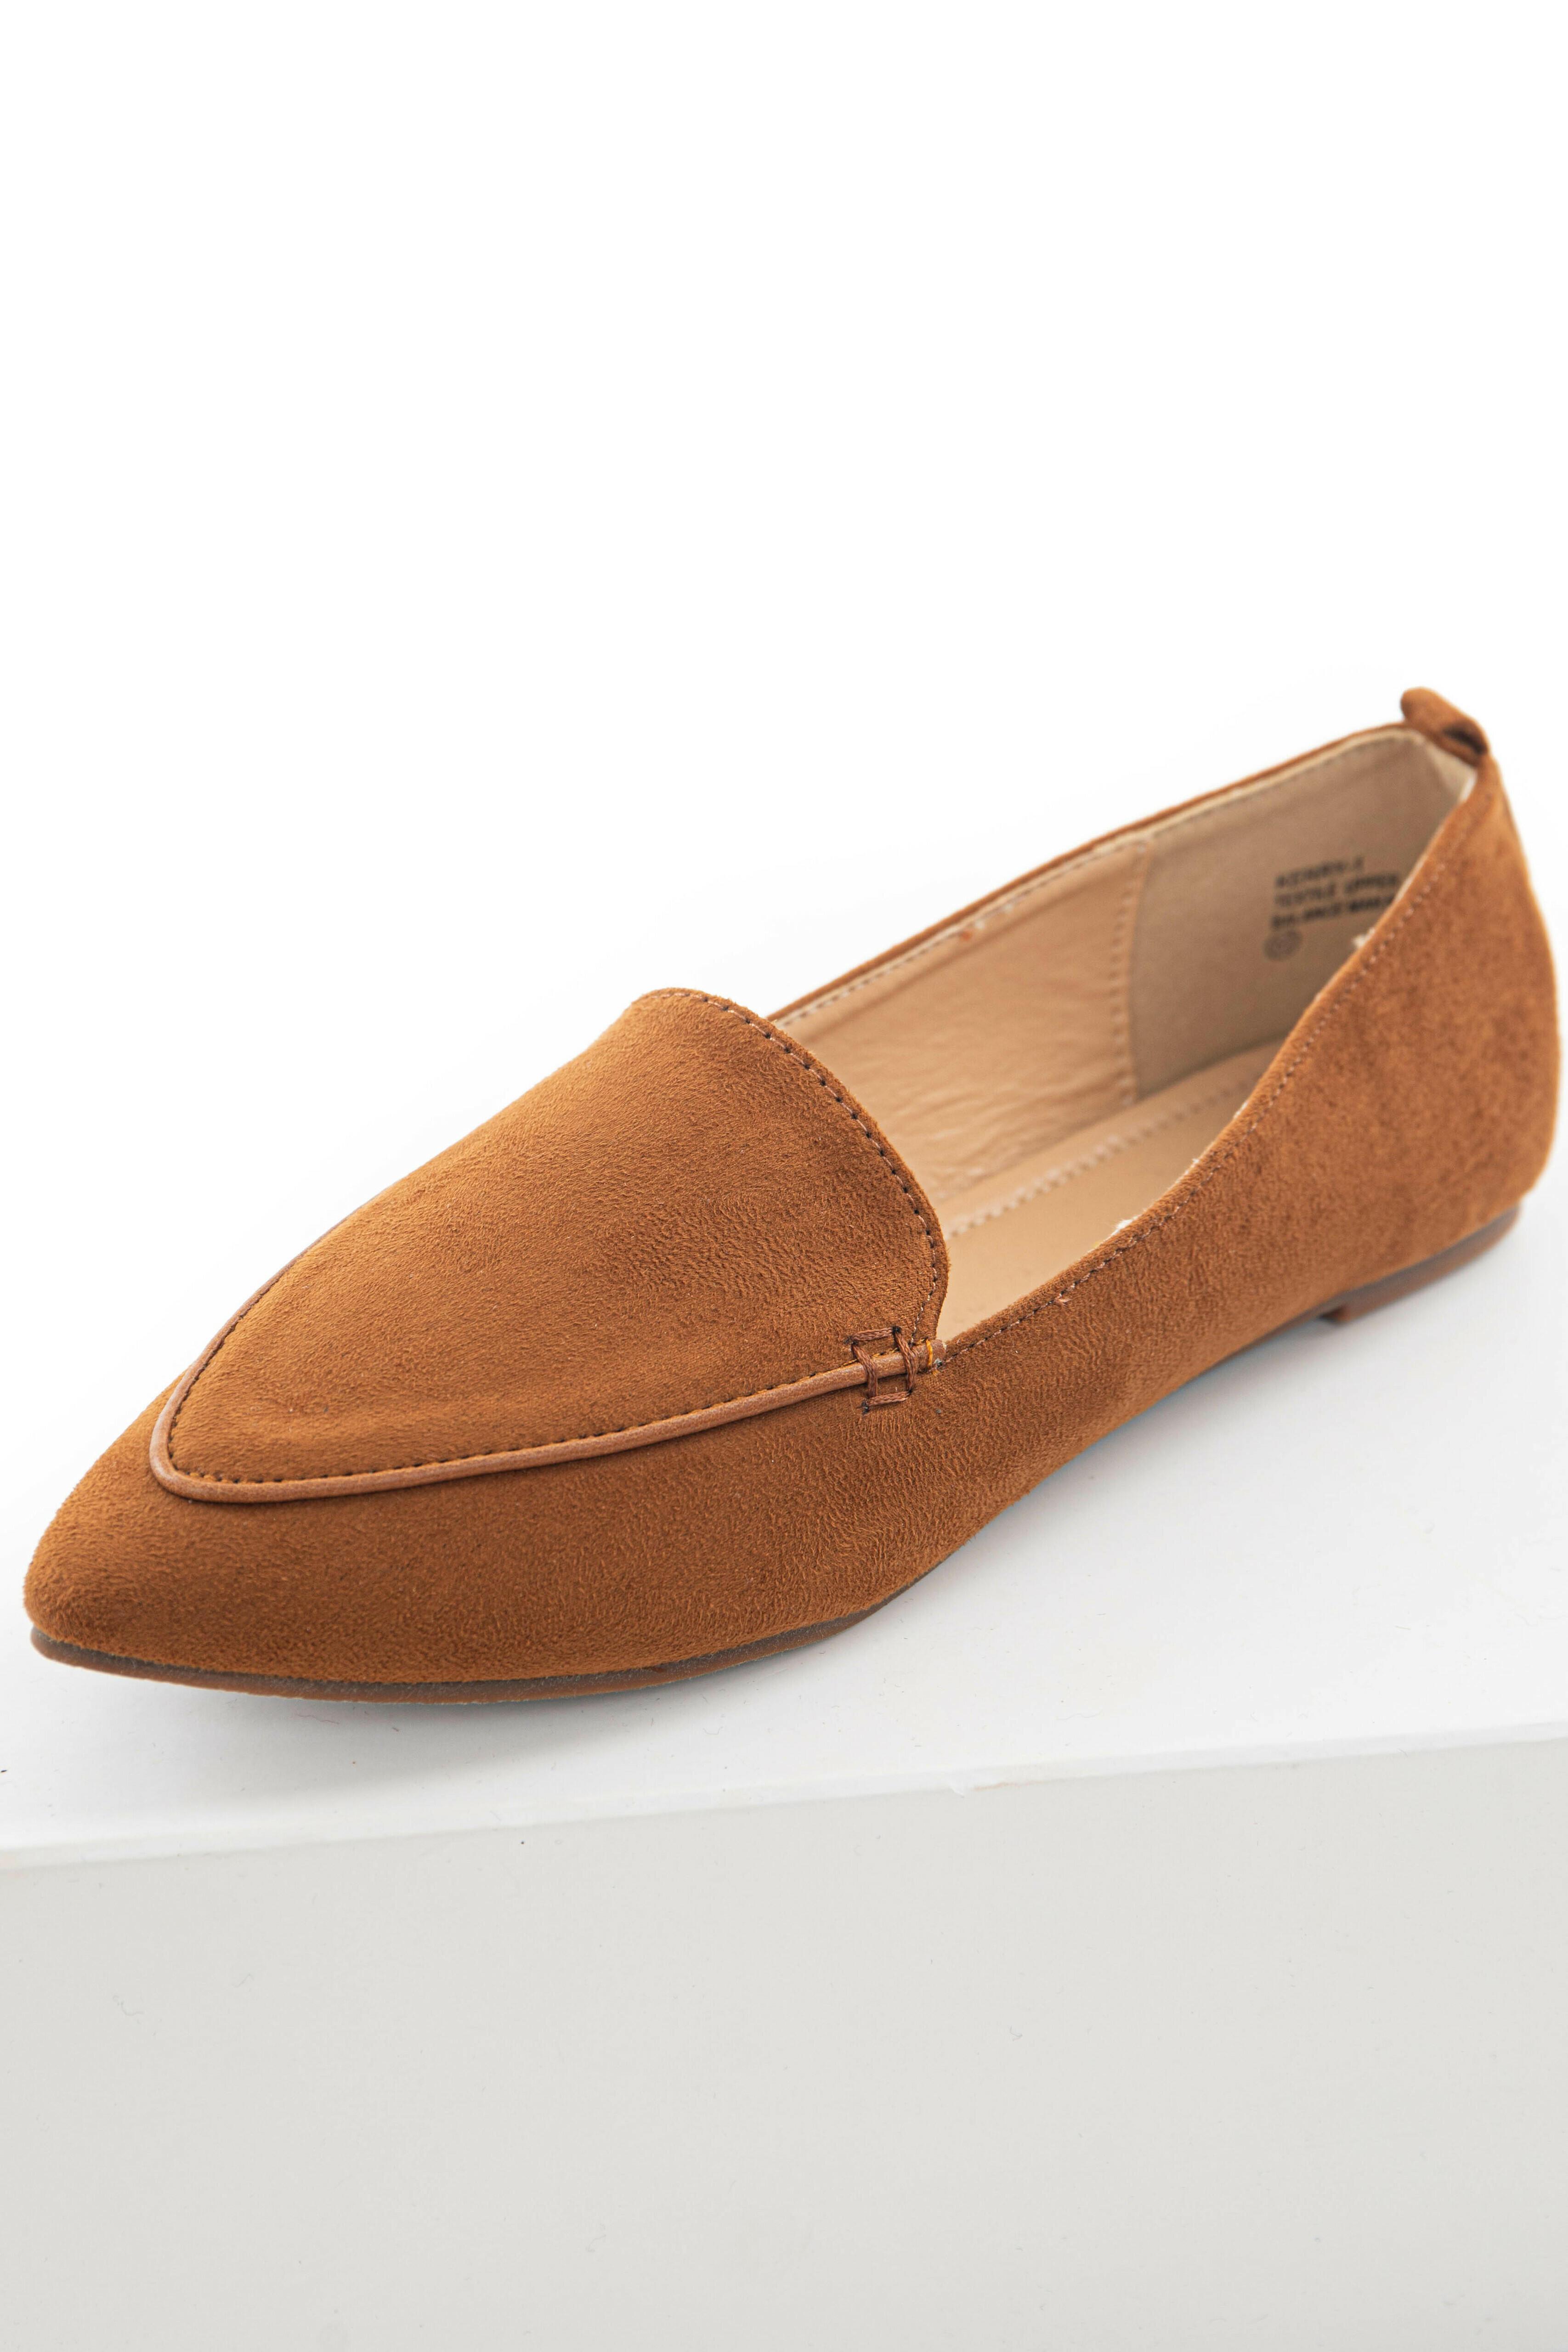 Caramel Faux Suede Pointed Toe Loafer Flats